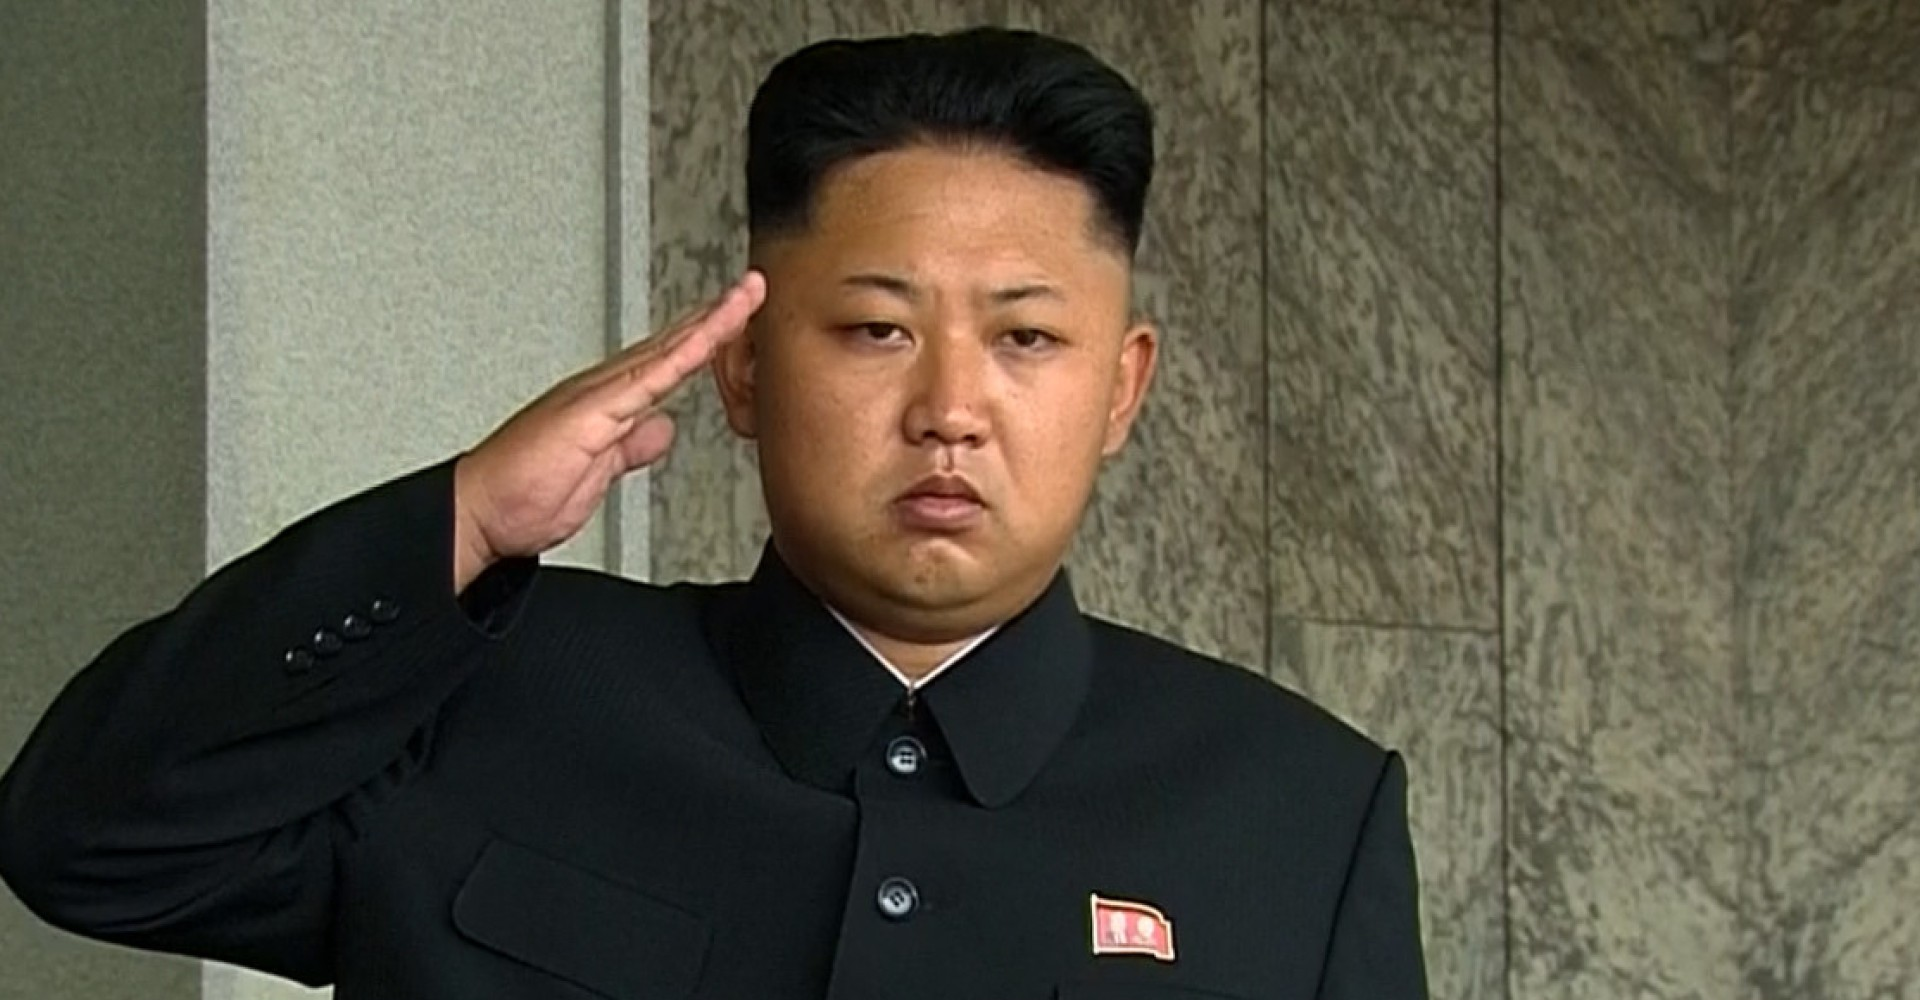 Kim Jong Un Learned To Drive At Three, And Nine Facts We've Basically Made Up